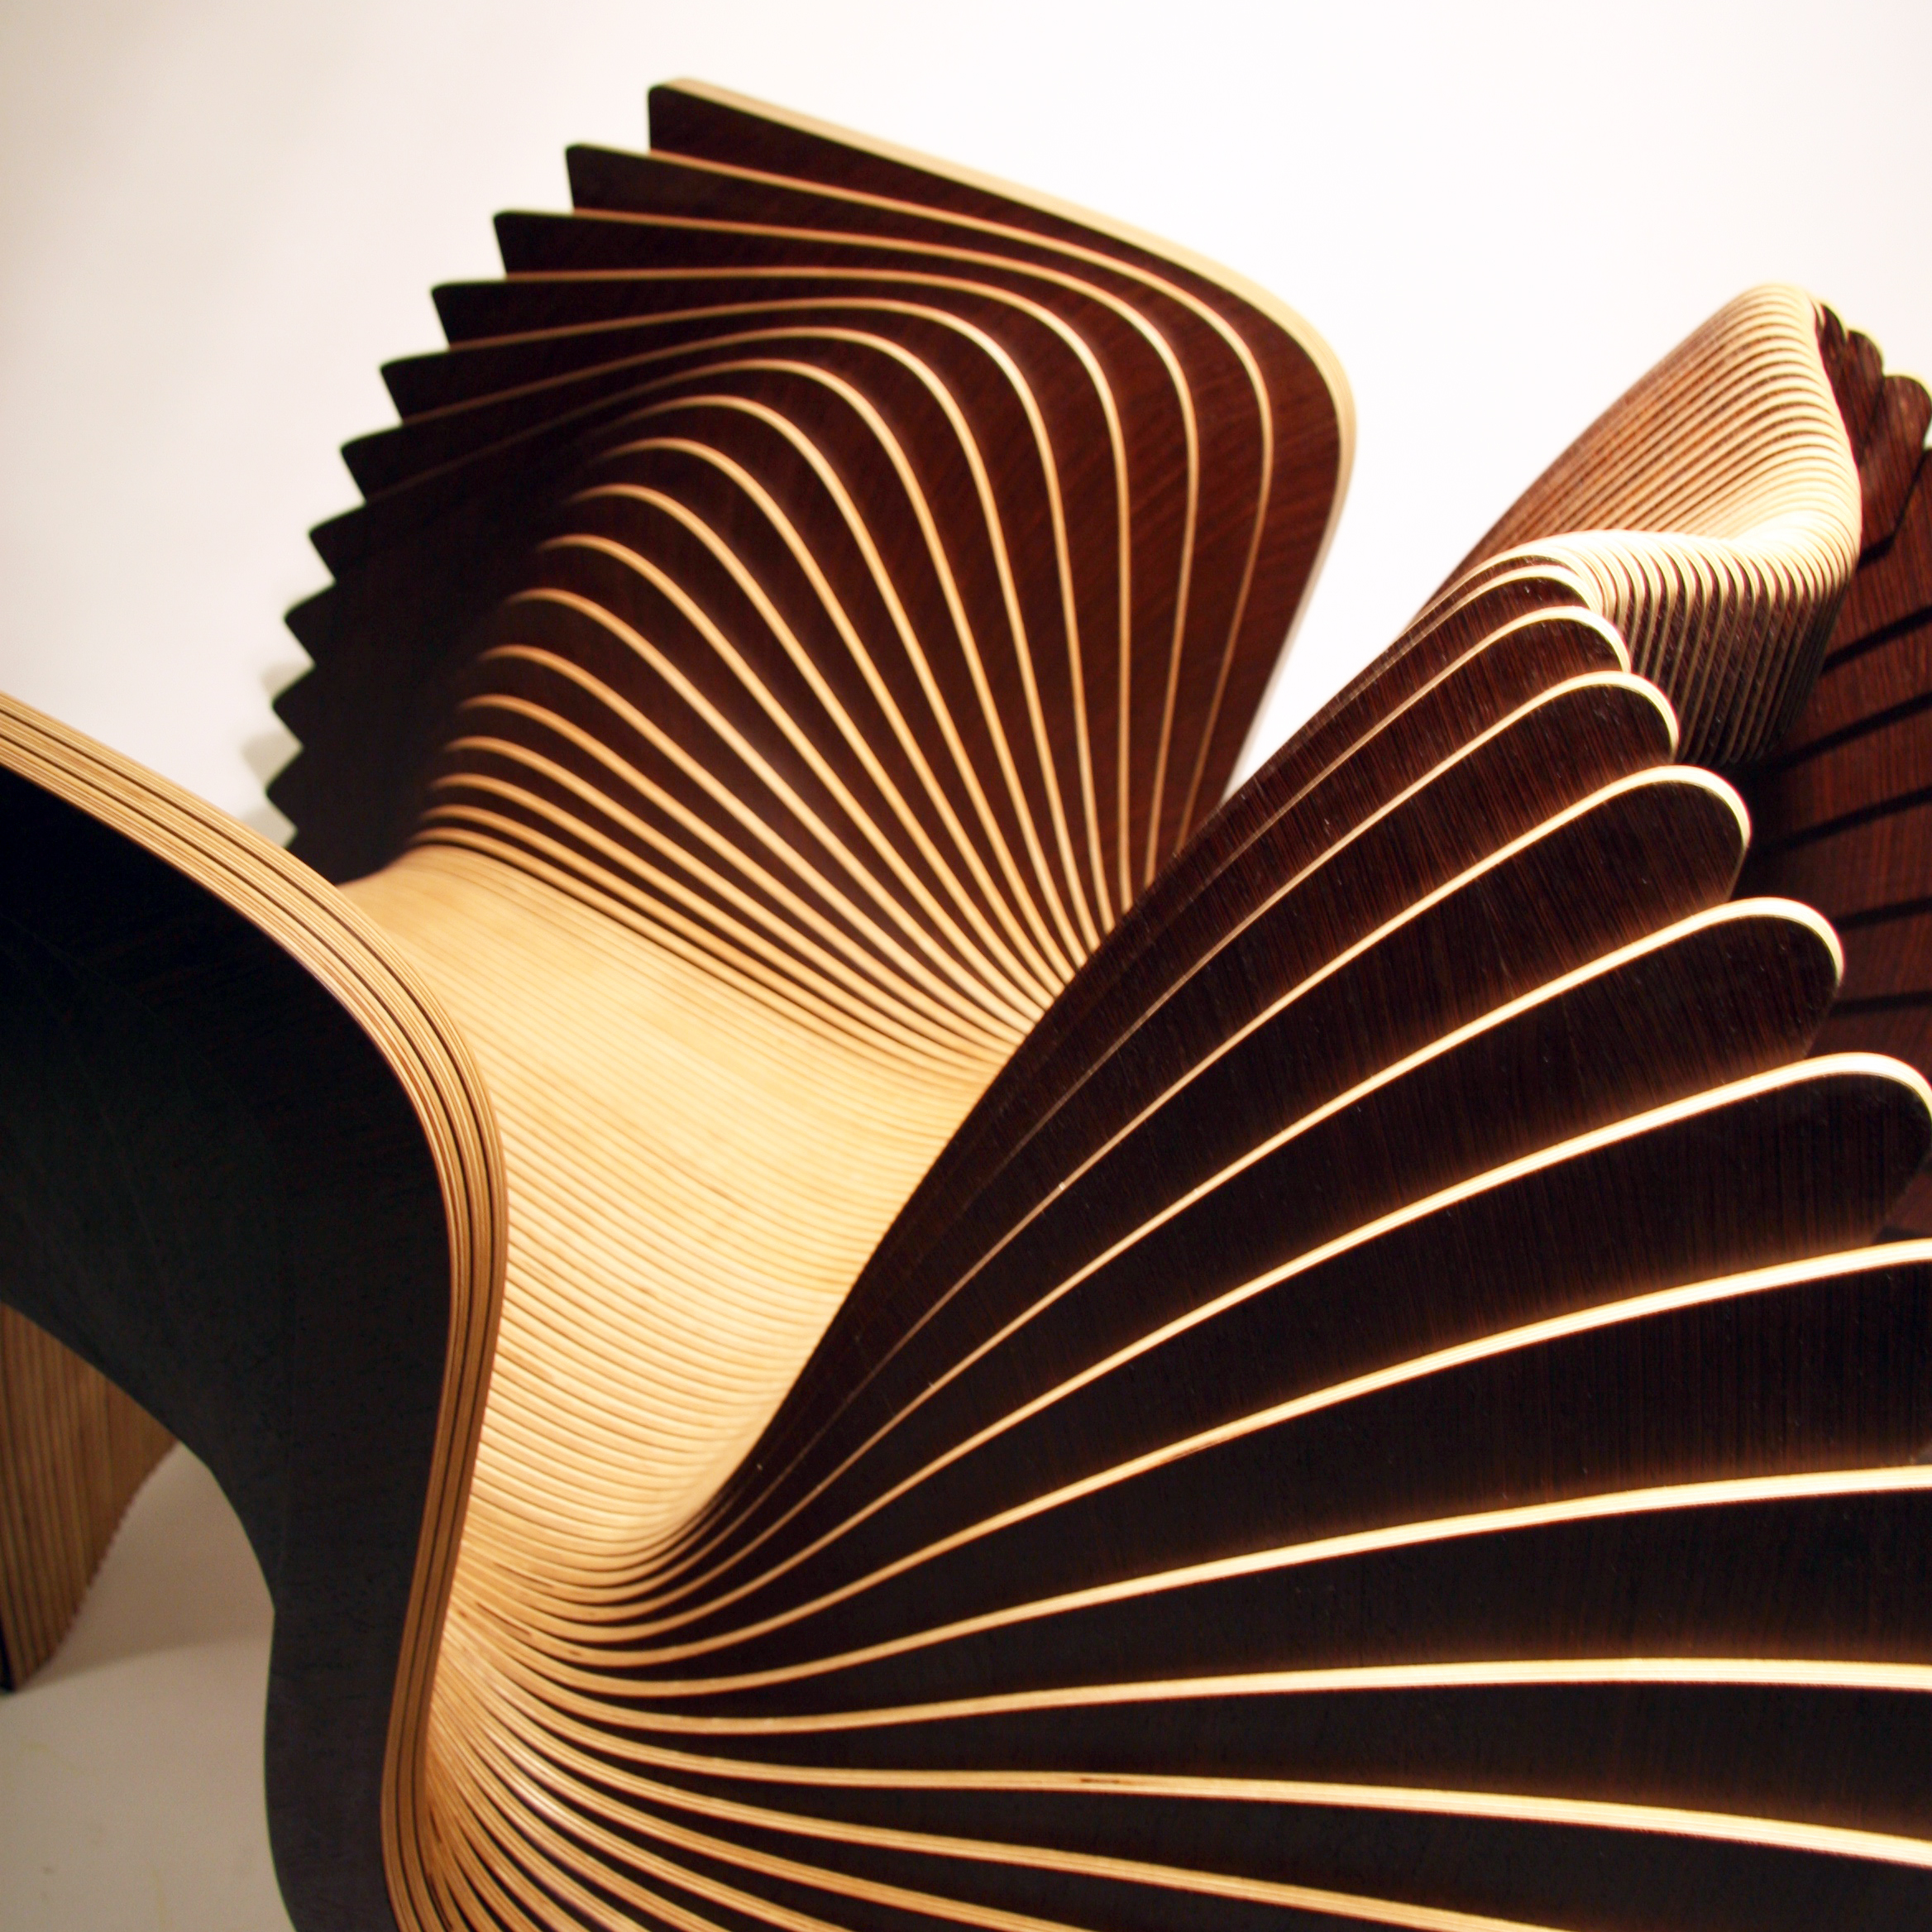 Alexander White.  Monroe Chair  , 2016 (detail).Maple veneer, Wenge veneer,  birch plywood.32 1/2 x 46 1/2 x 32 1/2 in. Courtesy of A. White Workshop.2016.AW.01.Photo: Courtesy of the Artist    METHOD: Veneer guillotine, veneer press, CNC router, electric sander, drill, clamps